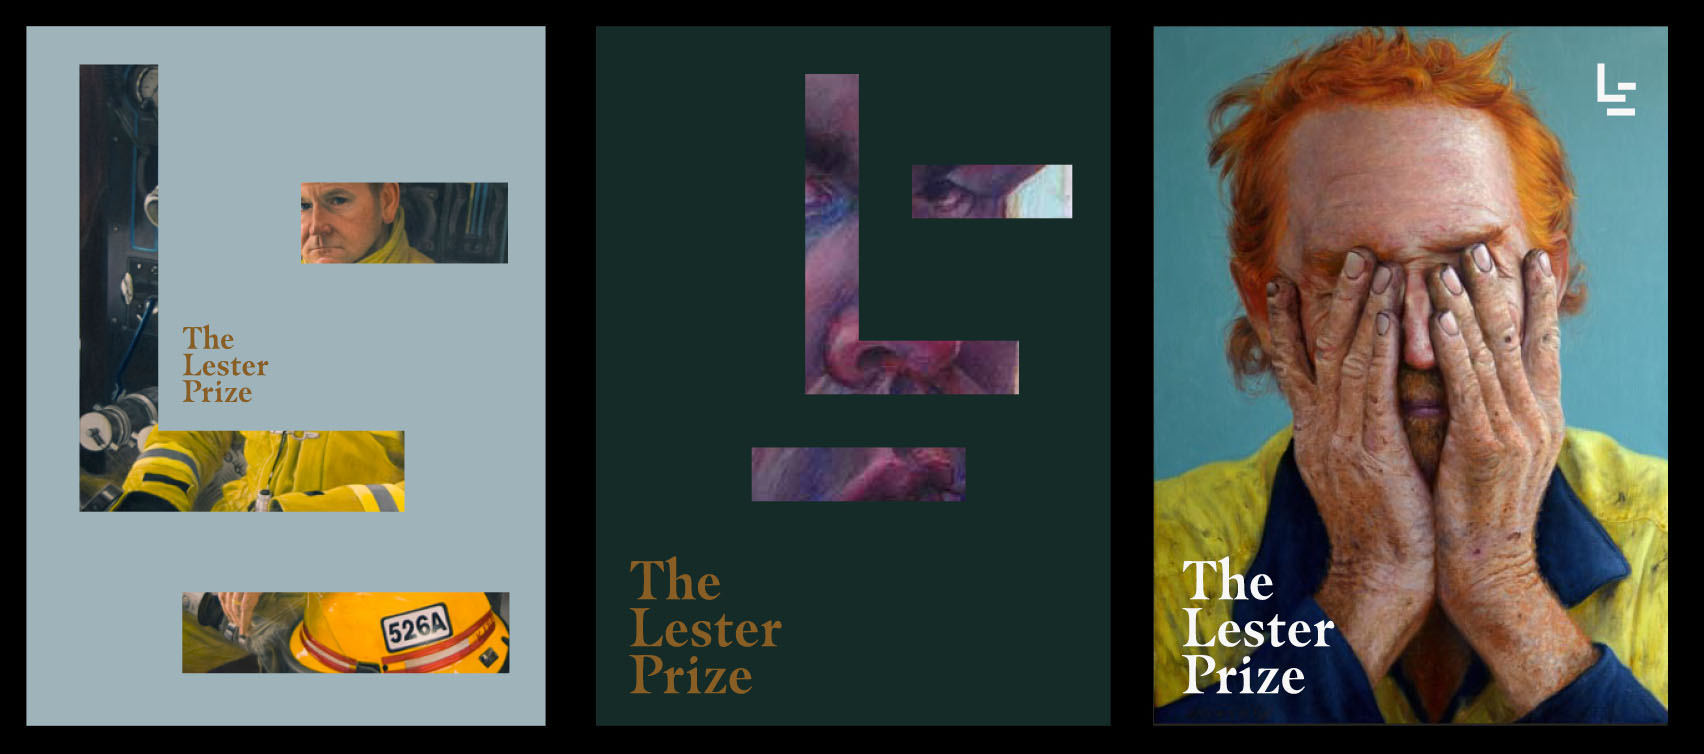 BLOCK UNVEILS A FRESH FACE FOR rebranded black swan prize – now THE LESTER PRIZE FOR PORTRAITURE